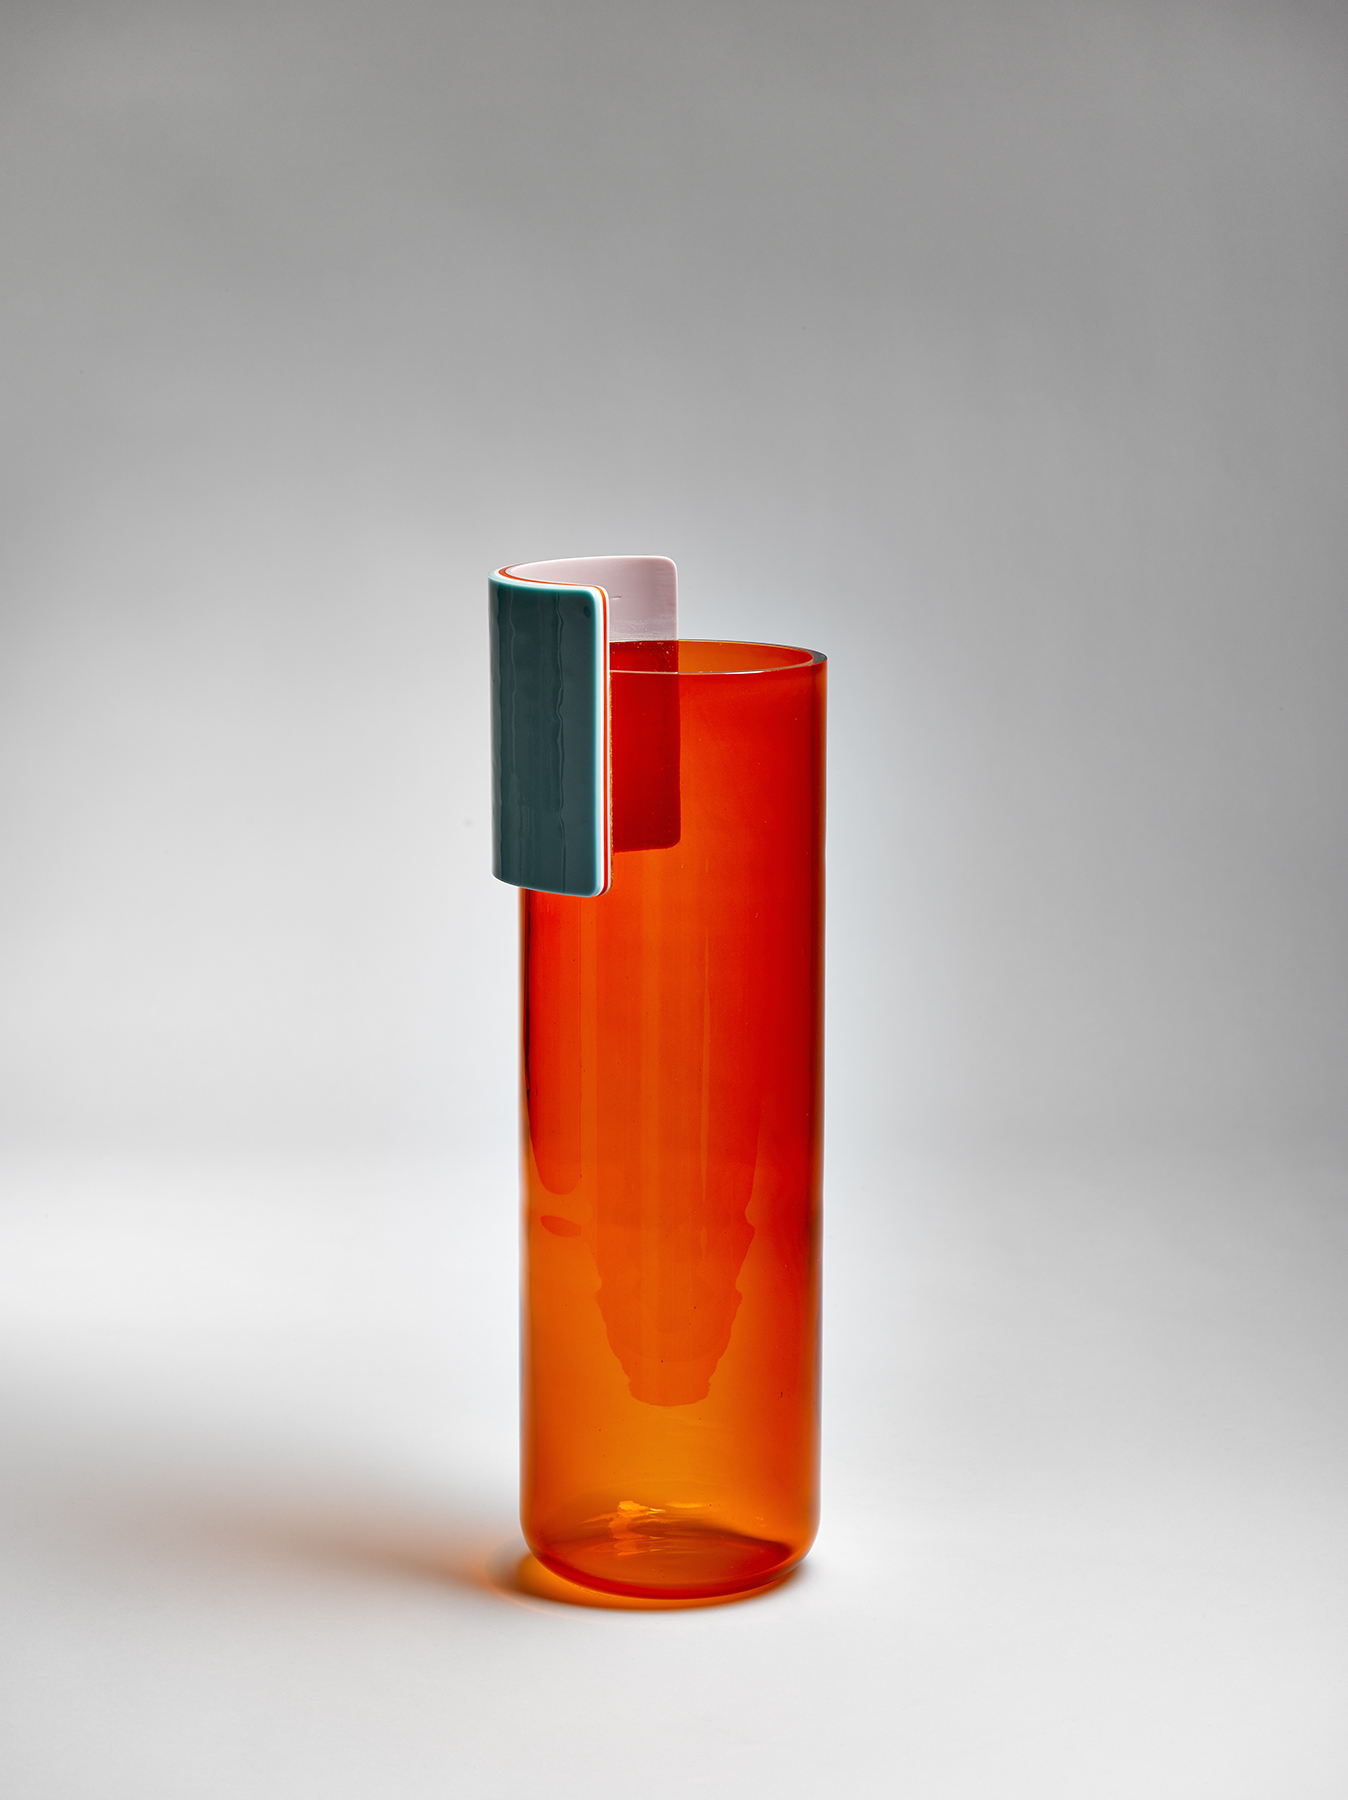 Julie Richoz, Vase Joliette, 2015 Photo : D. Giancatarina Collection Cirva